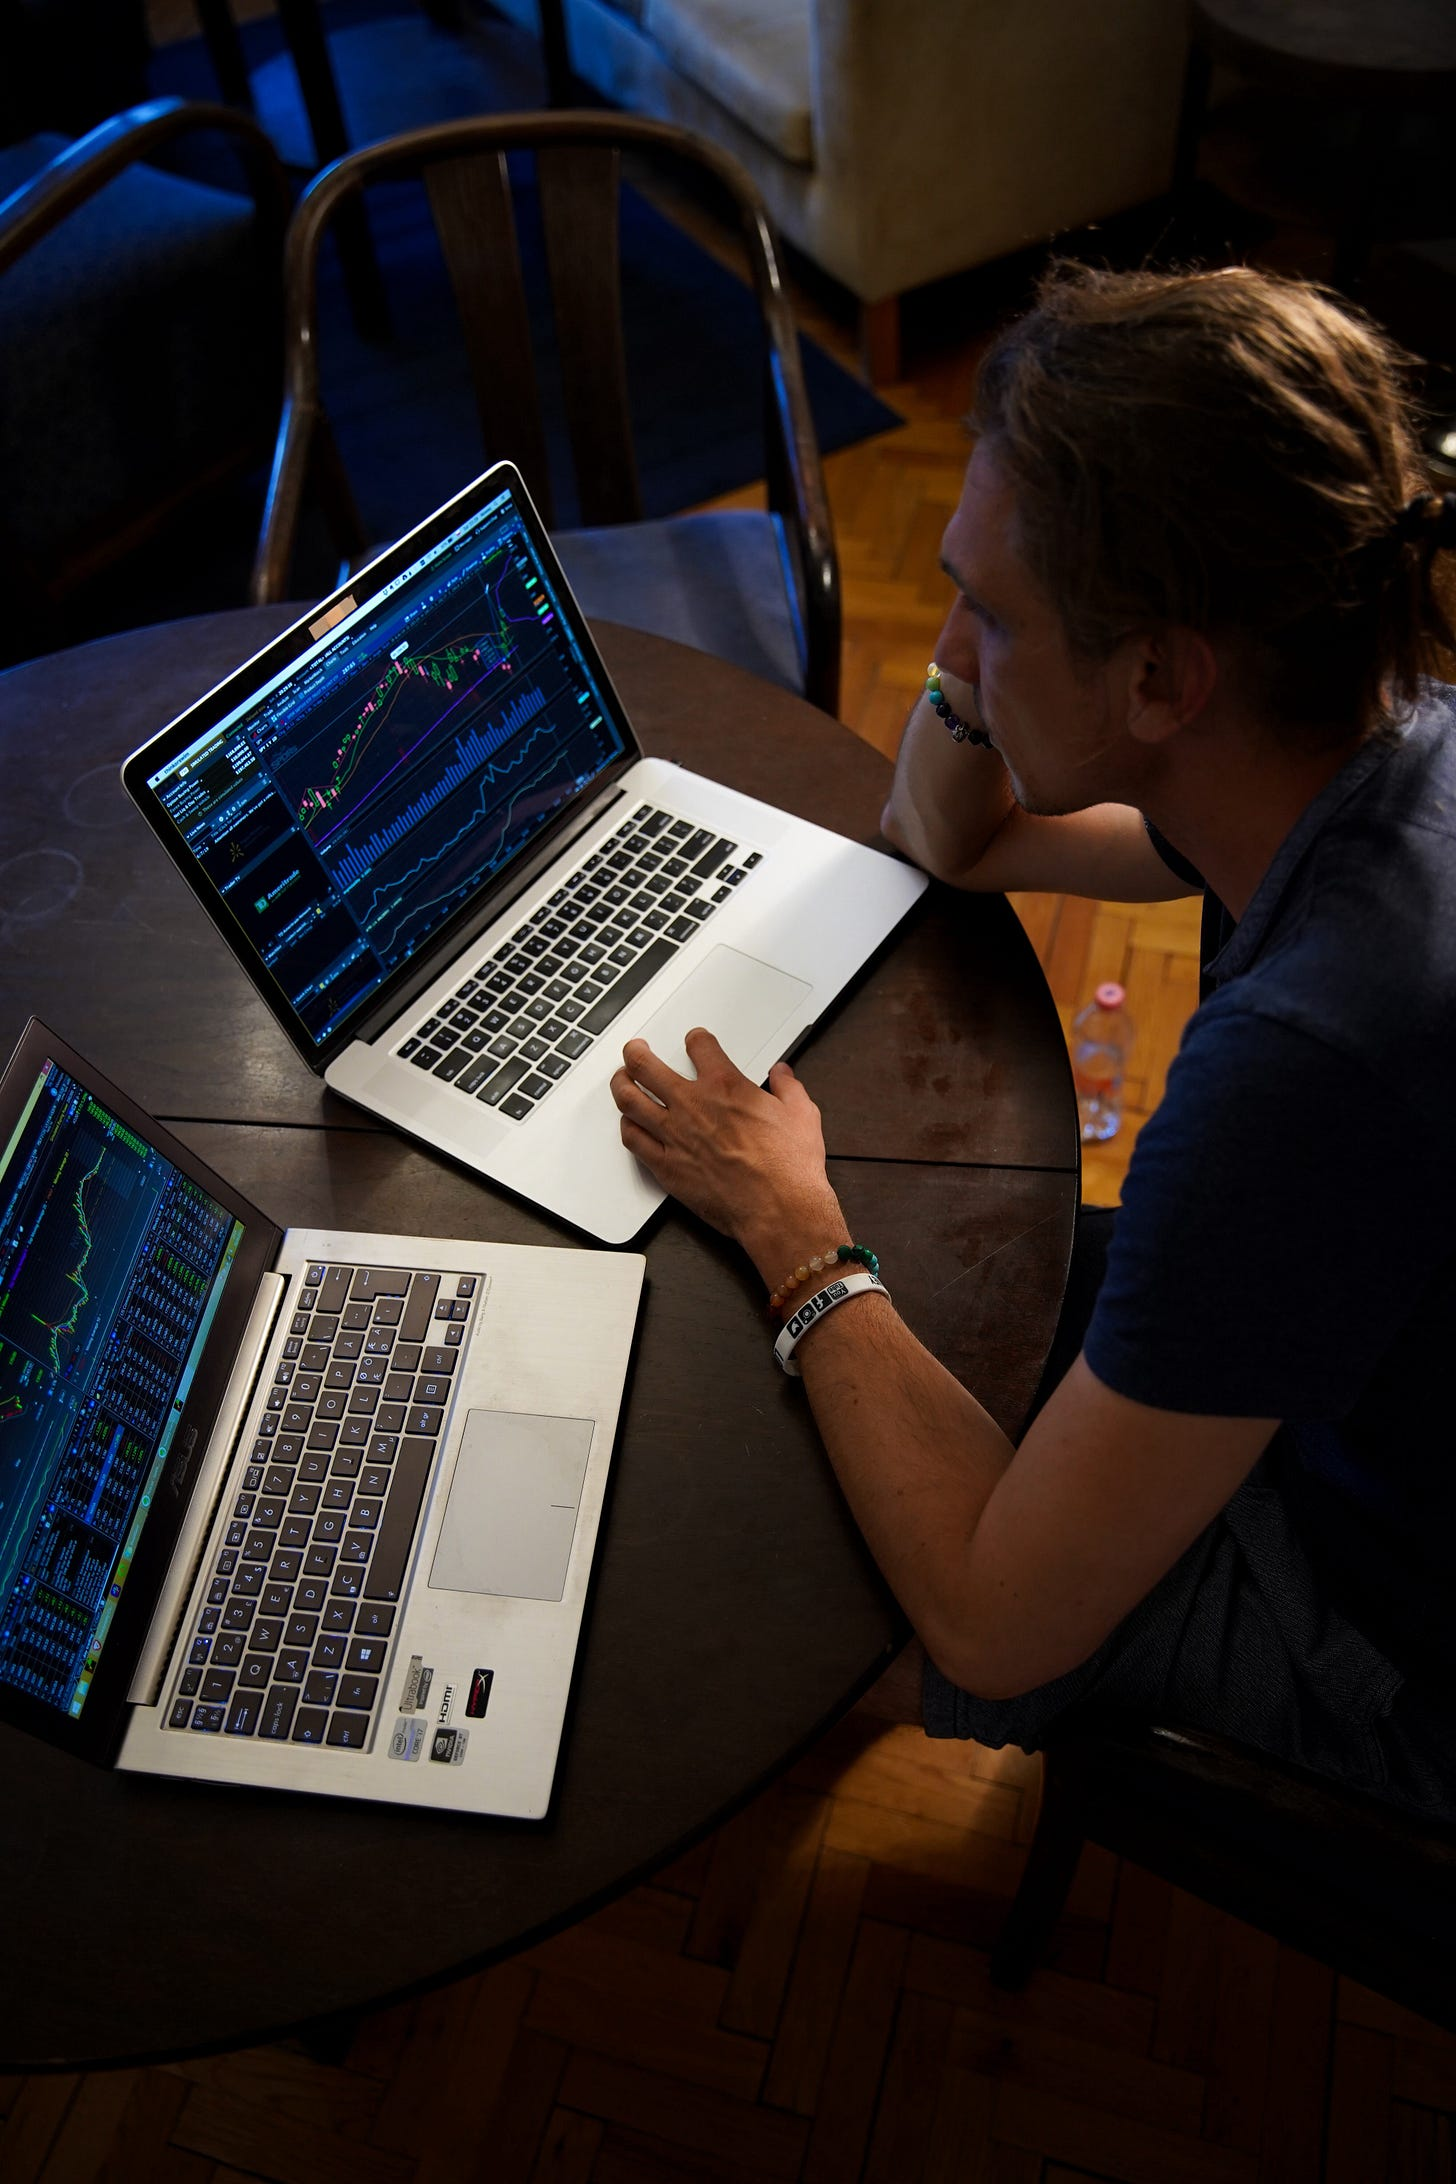 A man sitting in front of two laptops with stock charts and market data open. He's browsing different stocks on each of the laptops.